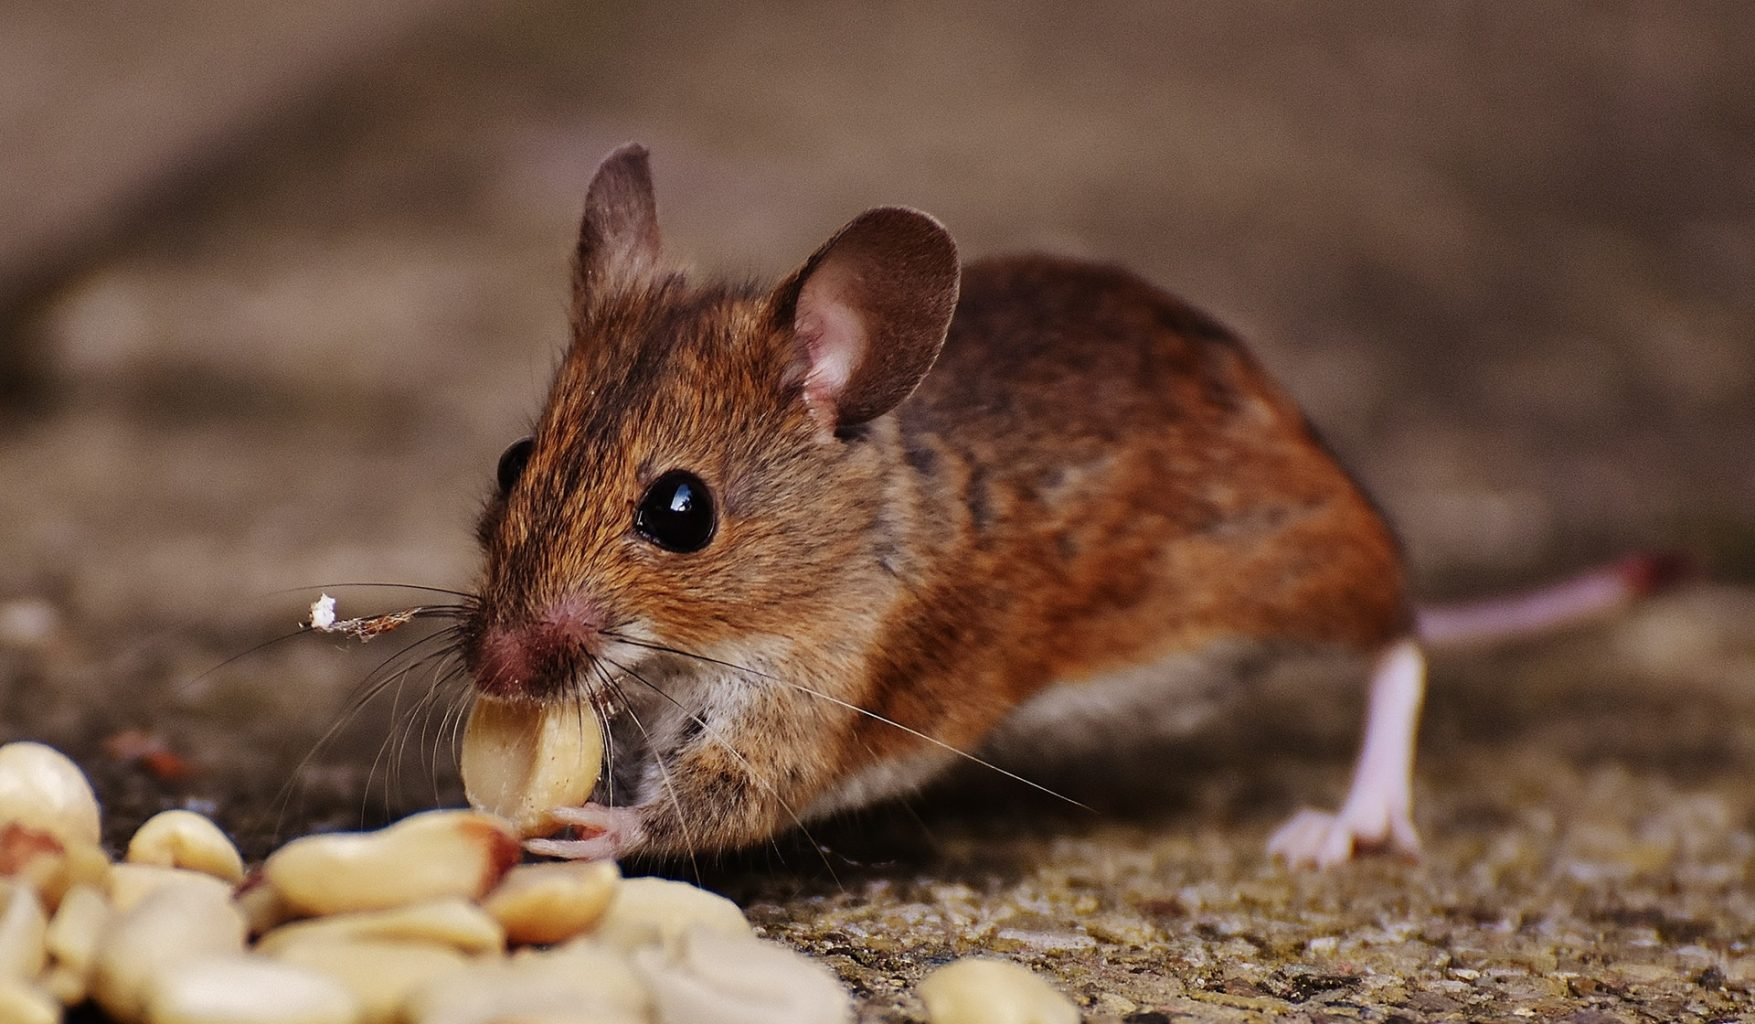 Image: A rather cute rat eating a peanut